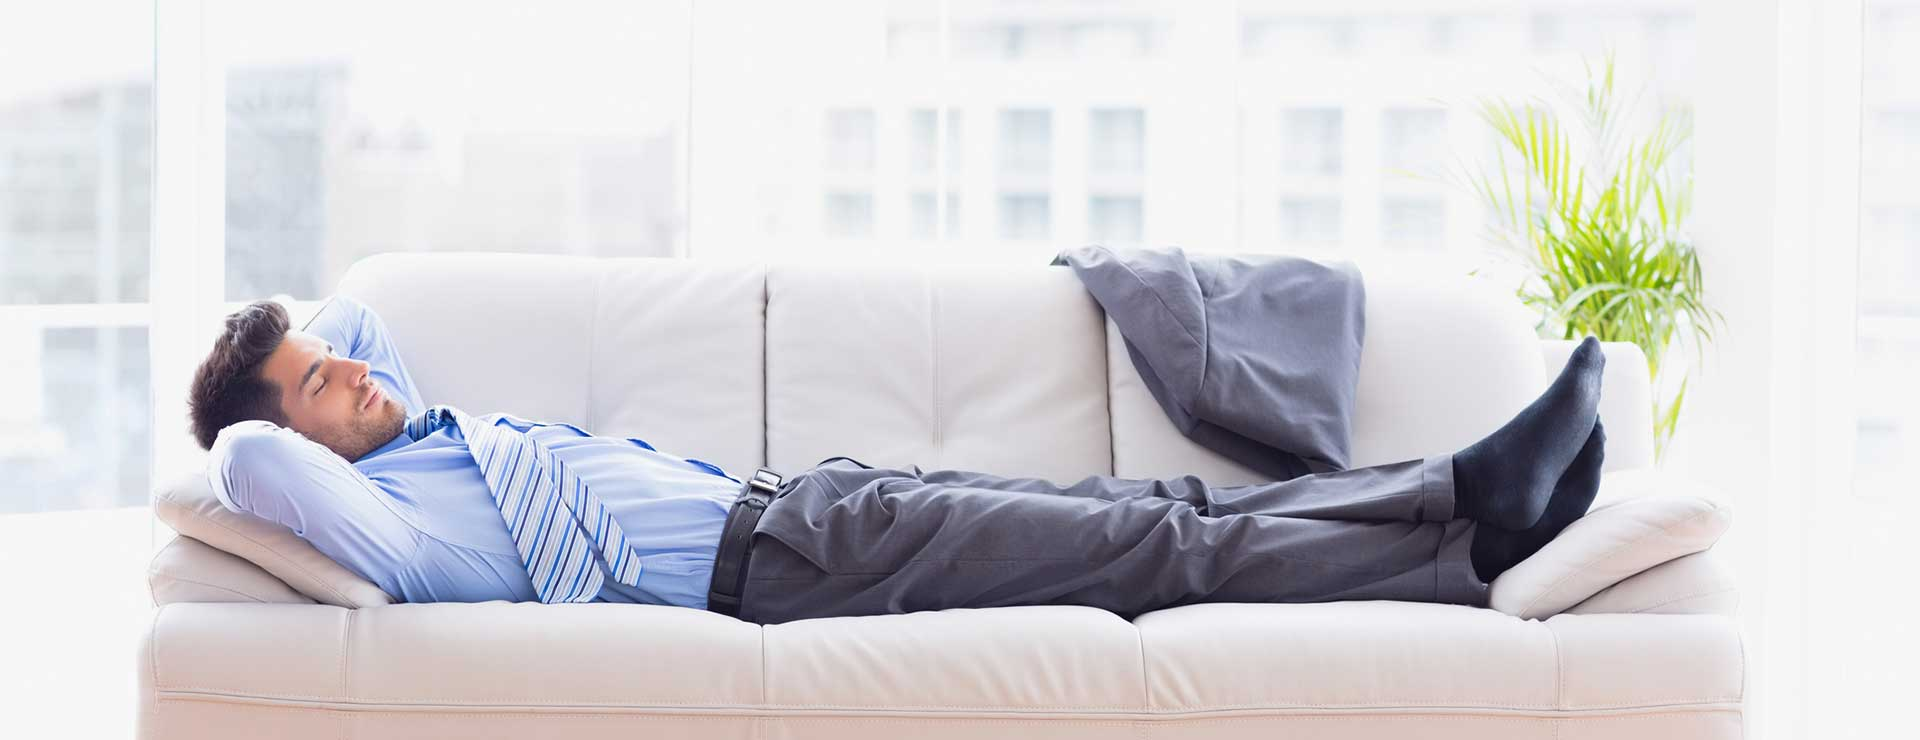 How to Sleep Well Despite Changes in Your Schedule